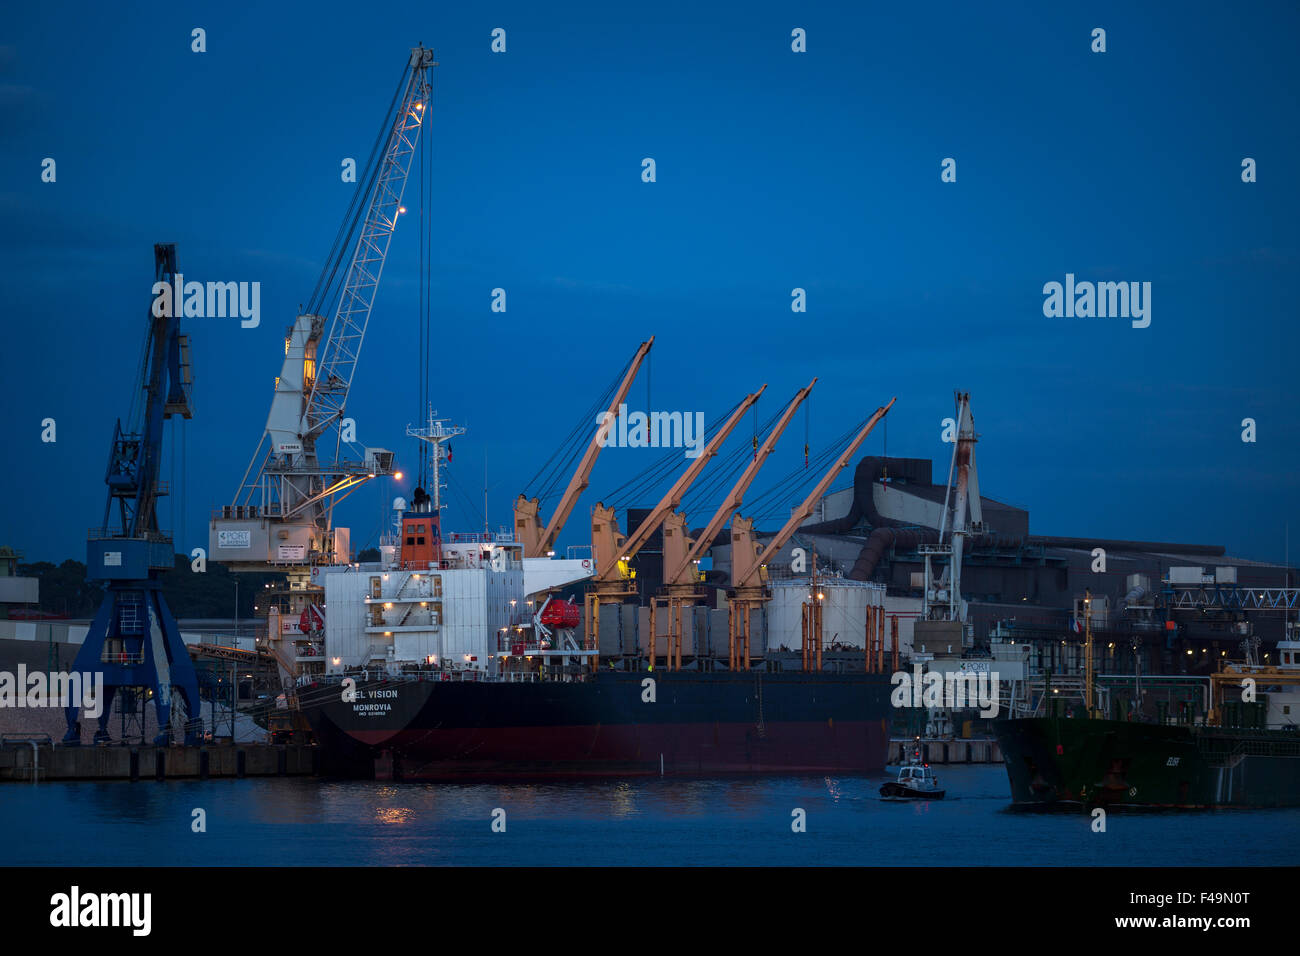 At night, a bulk carrier in Bayonne harbour on the Adour river (France). Vraquier dans le port de Bayonne sur l'Adour - Stock Image